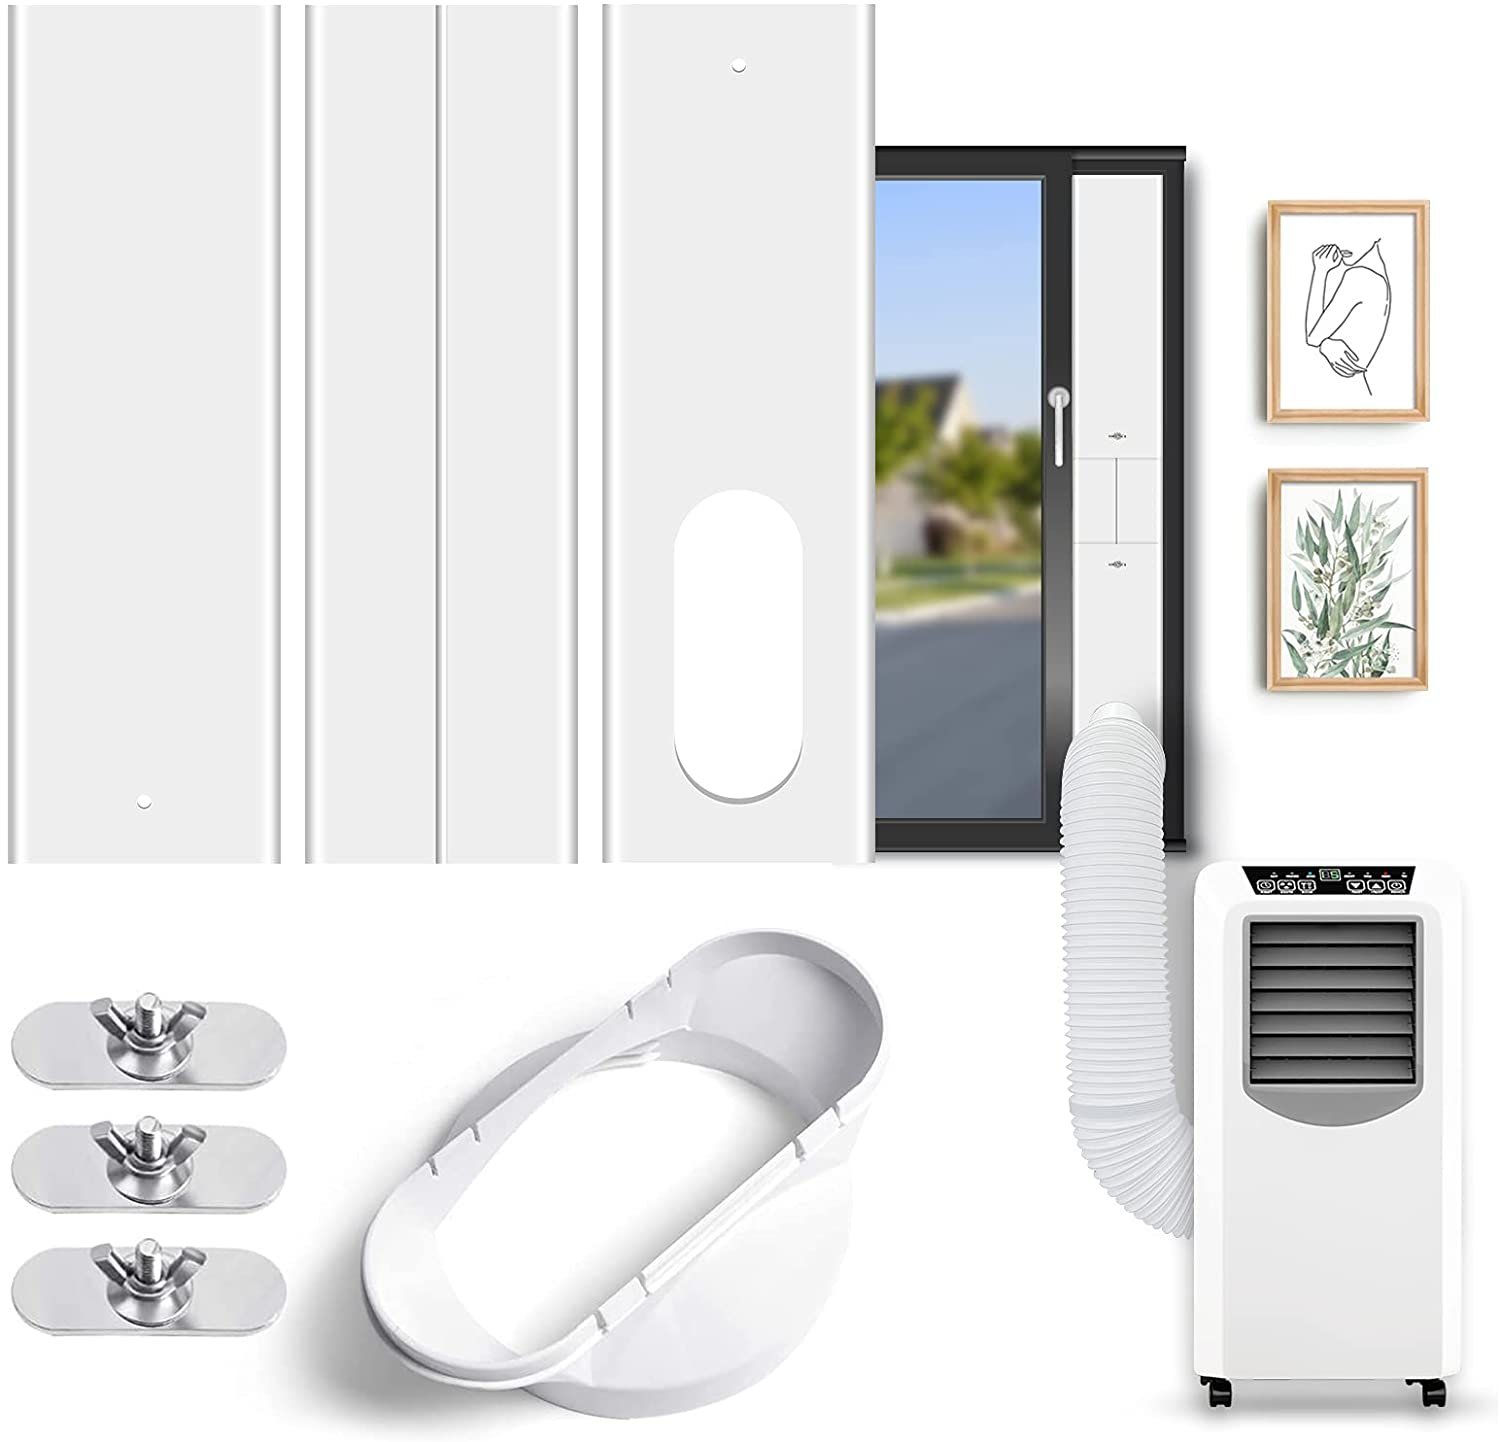 ZOOI Portable Air Conditioner Window Coupler Factory outlet with 2-in-1 Kit Wi Sale SALE% OFF